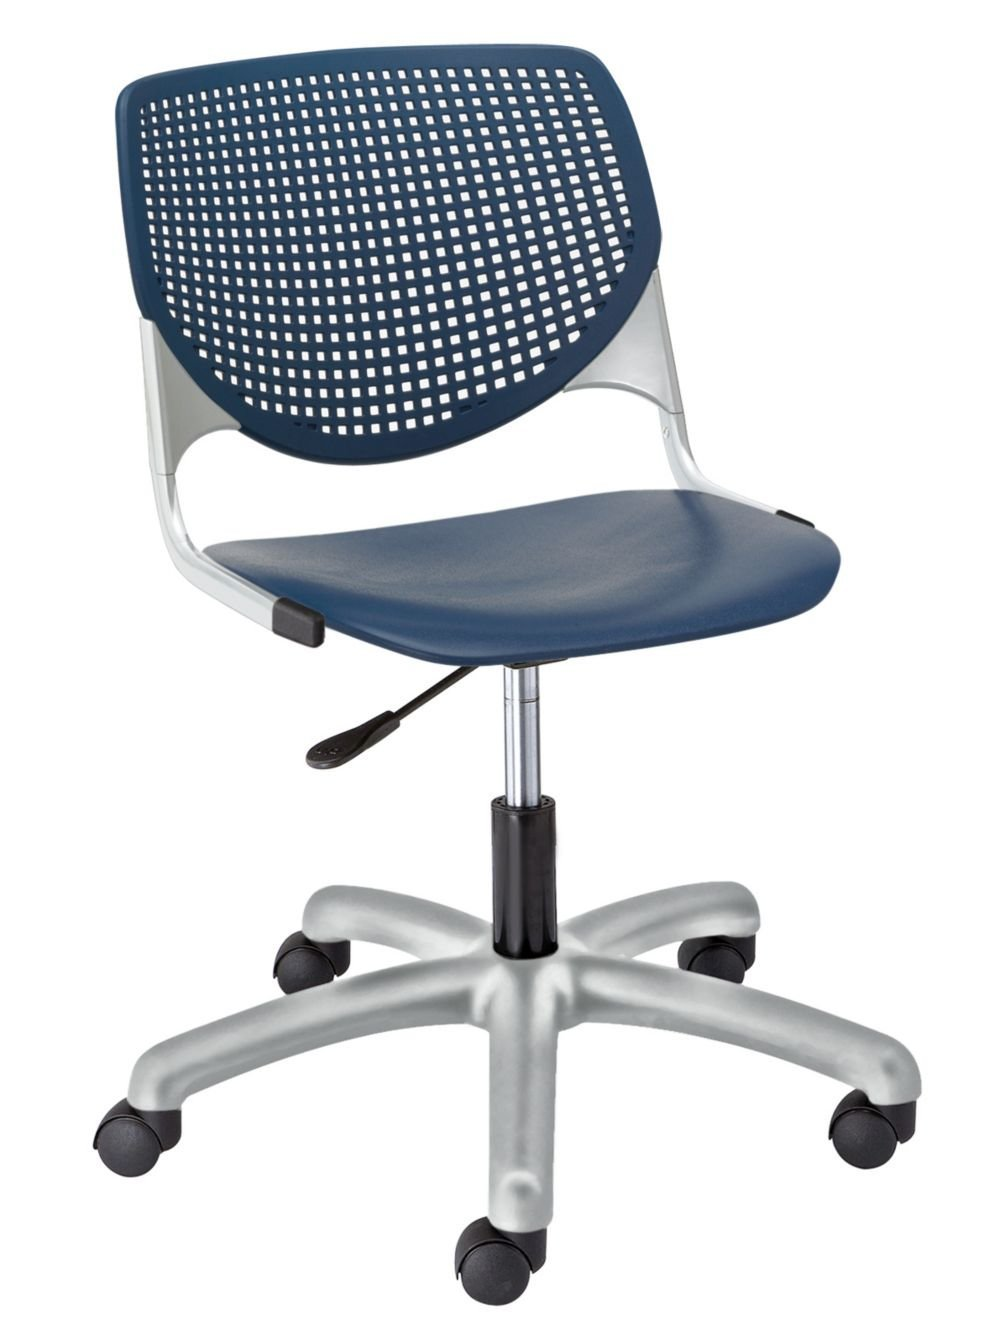 """Kool Polypropylene Perforated Back Task Chair Navy Polypropylene/Silver Frame Dimensions: 19.3""""W x 22""""D x 35""""H Seat Dimensions: 18""""Wx18""""Dx18""""H Back Dimensions: 19""""Wx13.5""""H Weight: 27 lbs"""